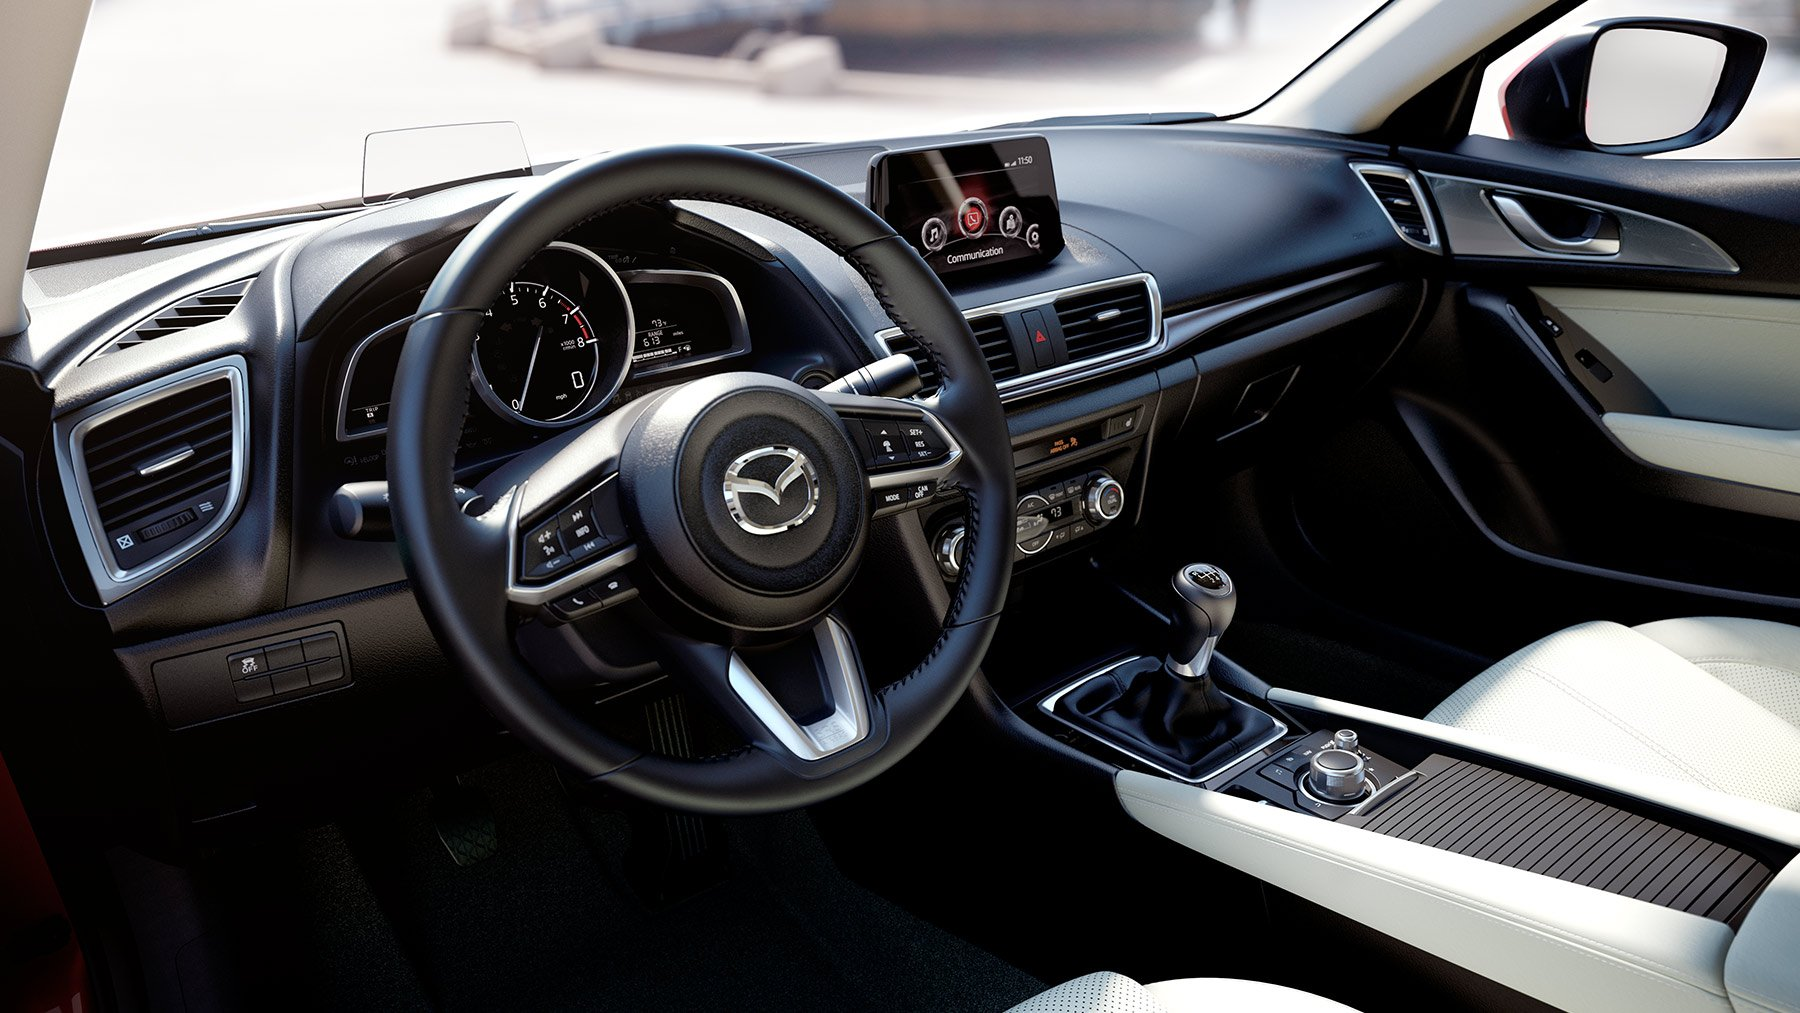 2018 Mazda 3 Sedan Interior White Leasetechs